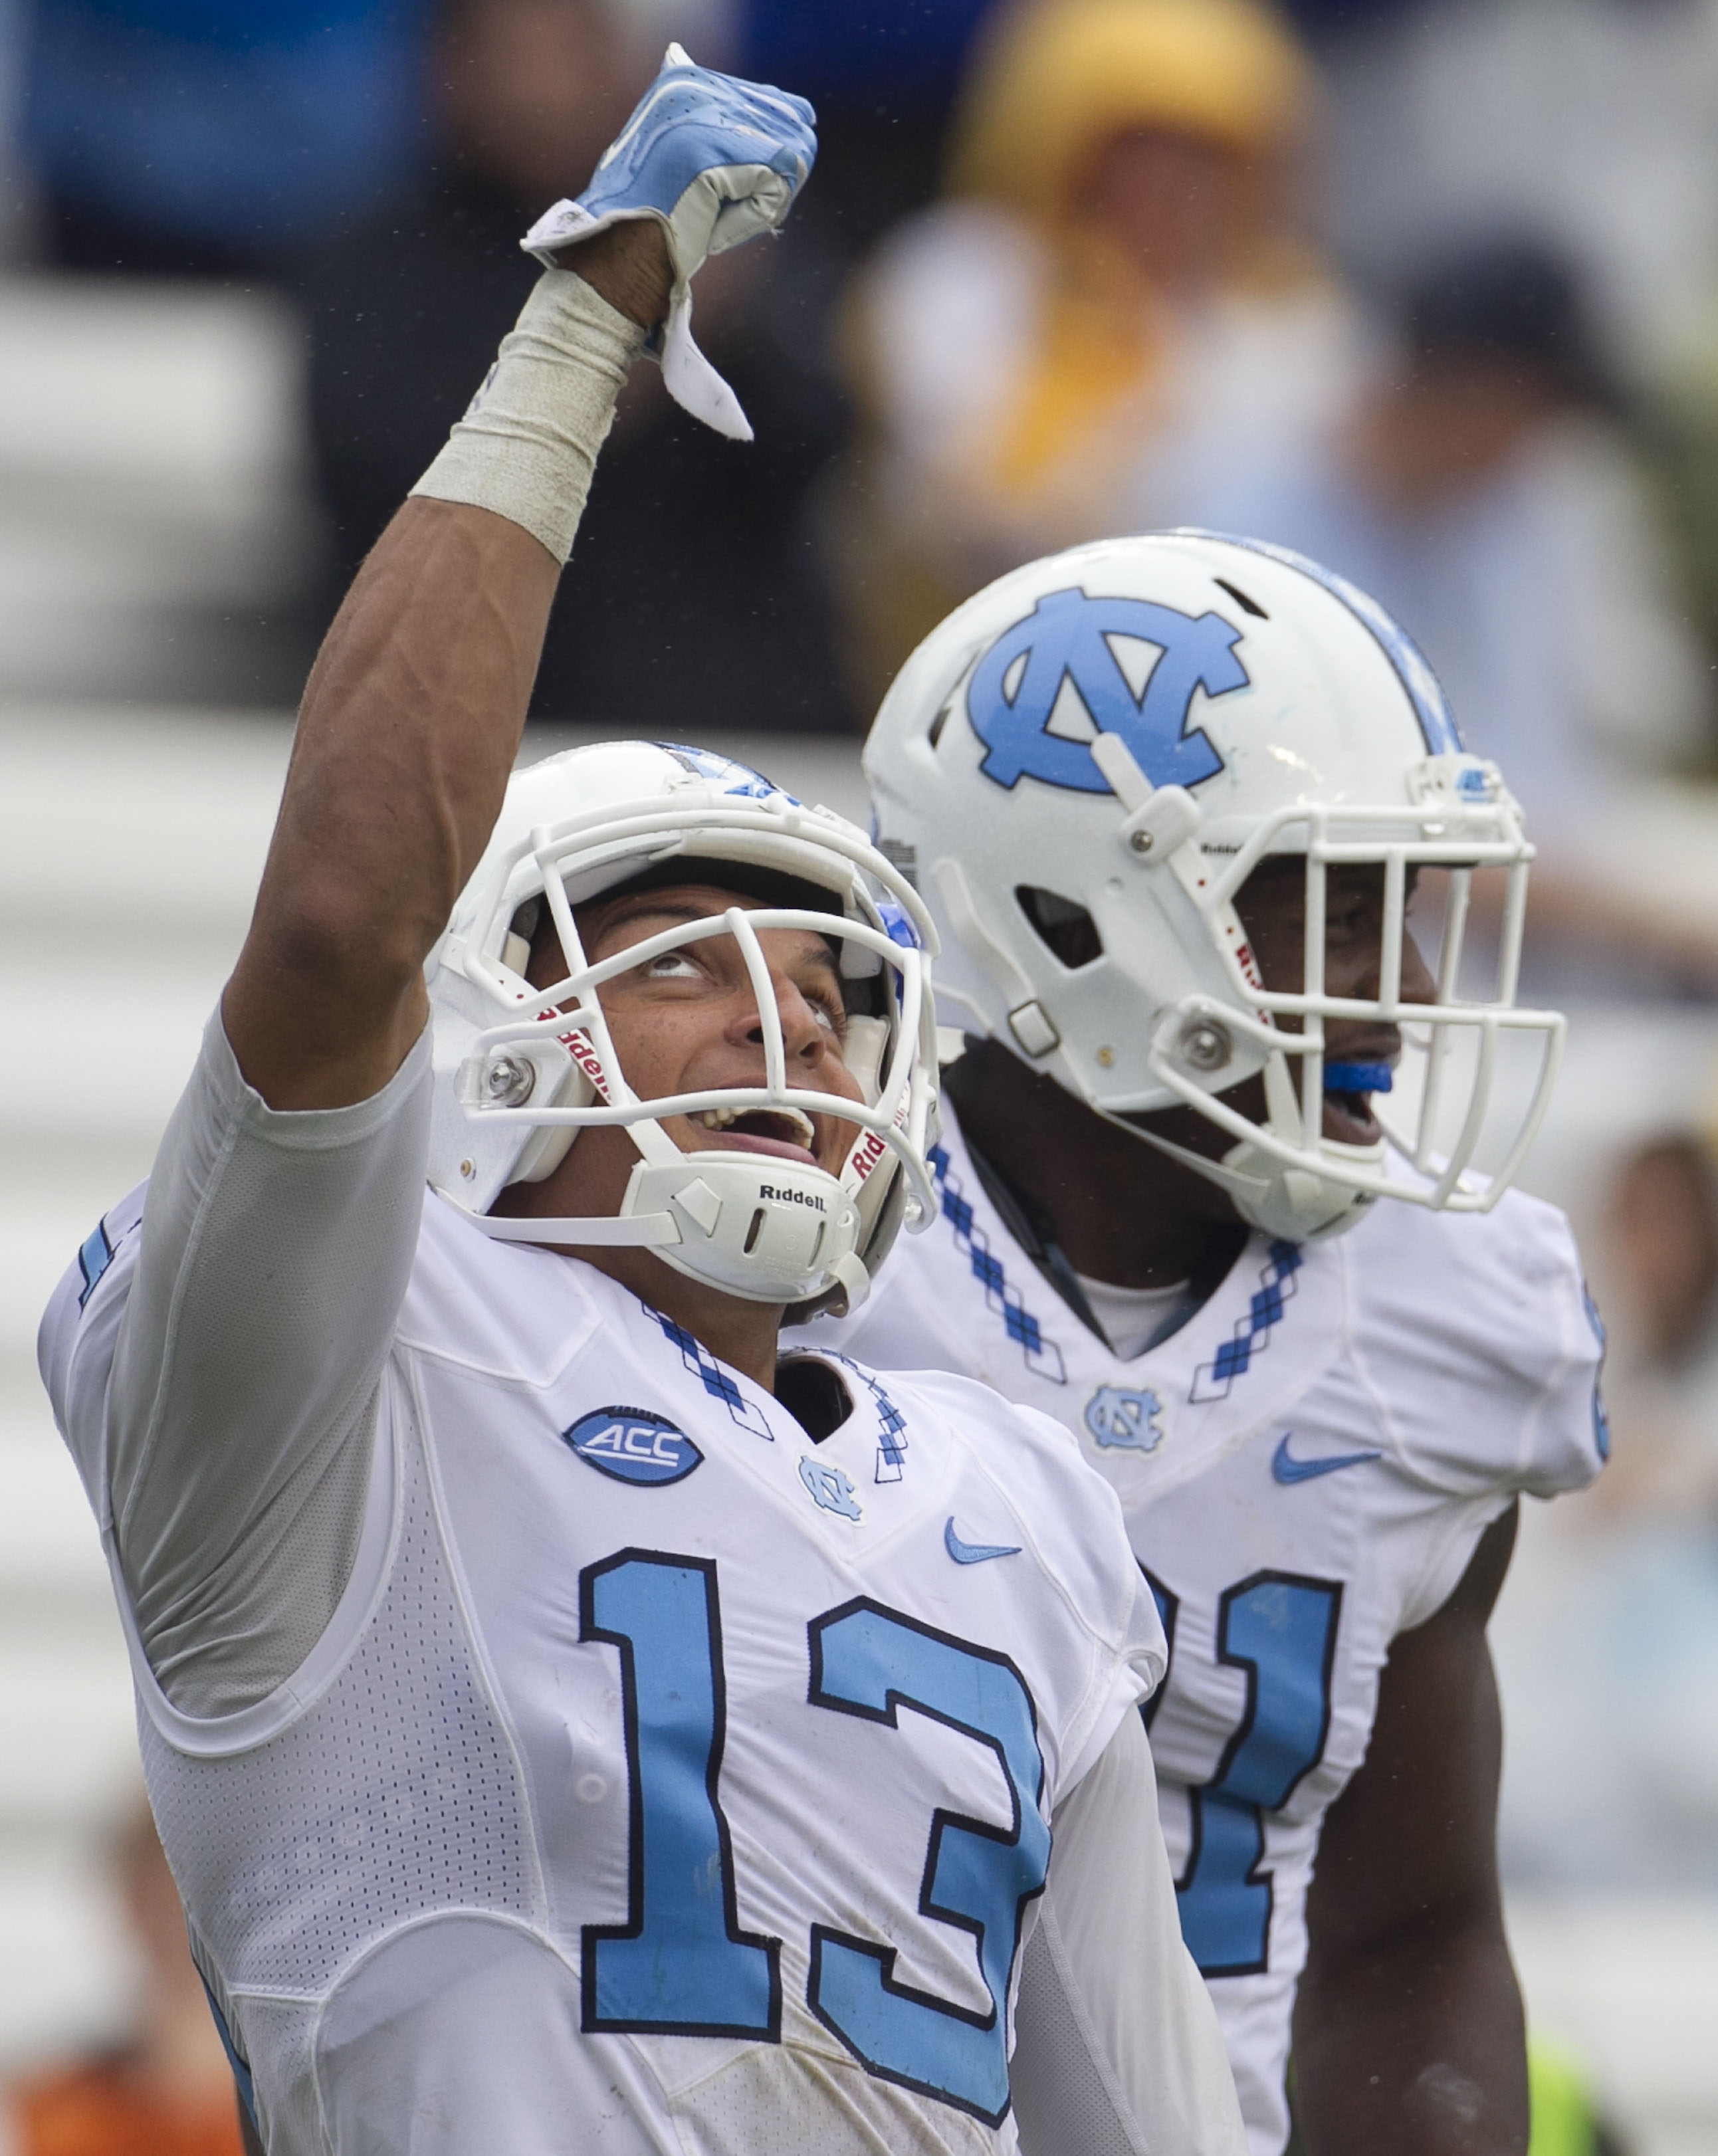 North Carolina's Mack Hollins (13) celebrates his 64 yard touchdown on a pass from quarterback Mitch Trubisky in the third quarter of an NCAA college football game against Delaware on Saturday, Sept. 26, 2015 at Kenan Stadium in Chapel Hill, N.C. (Robert